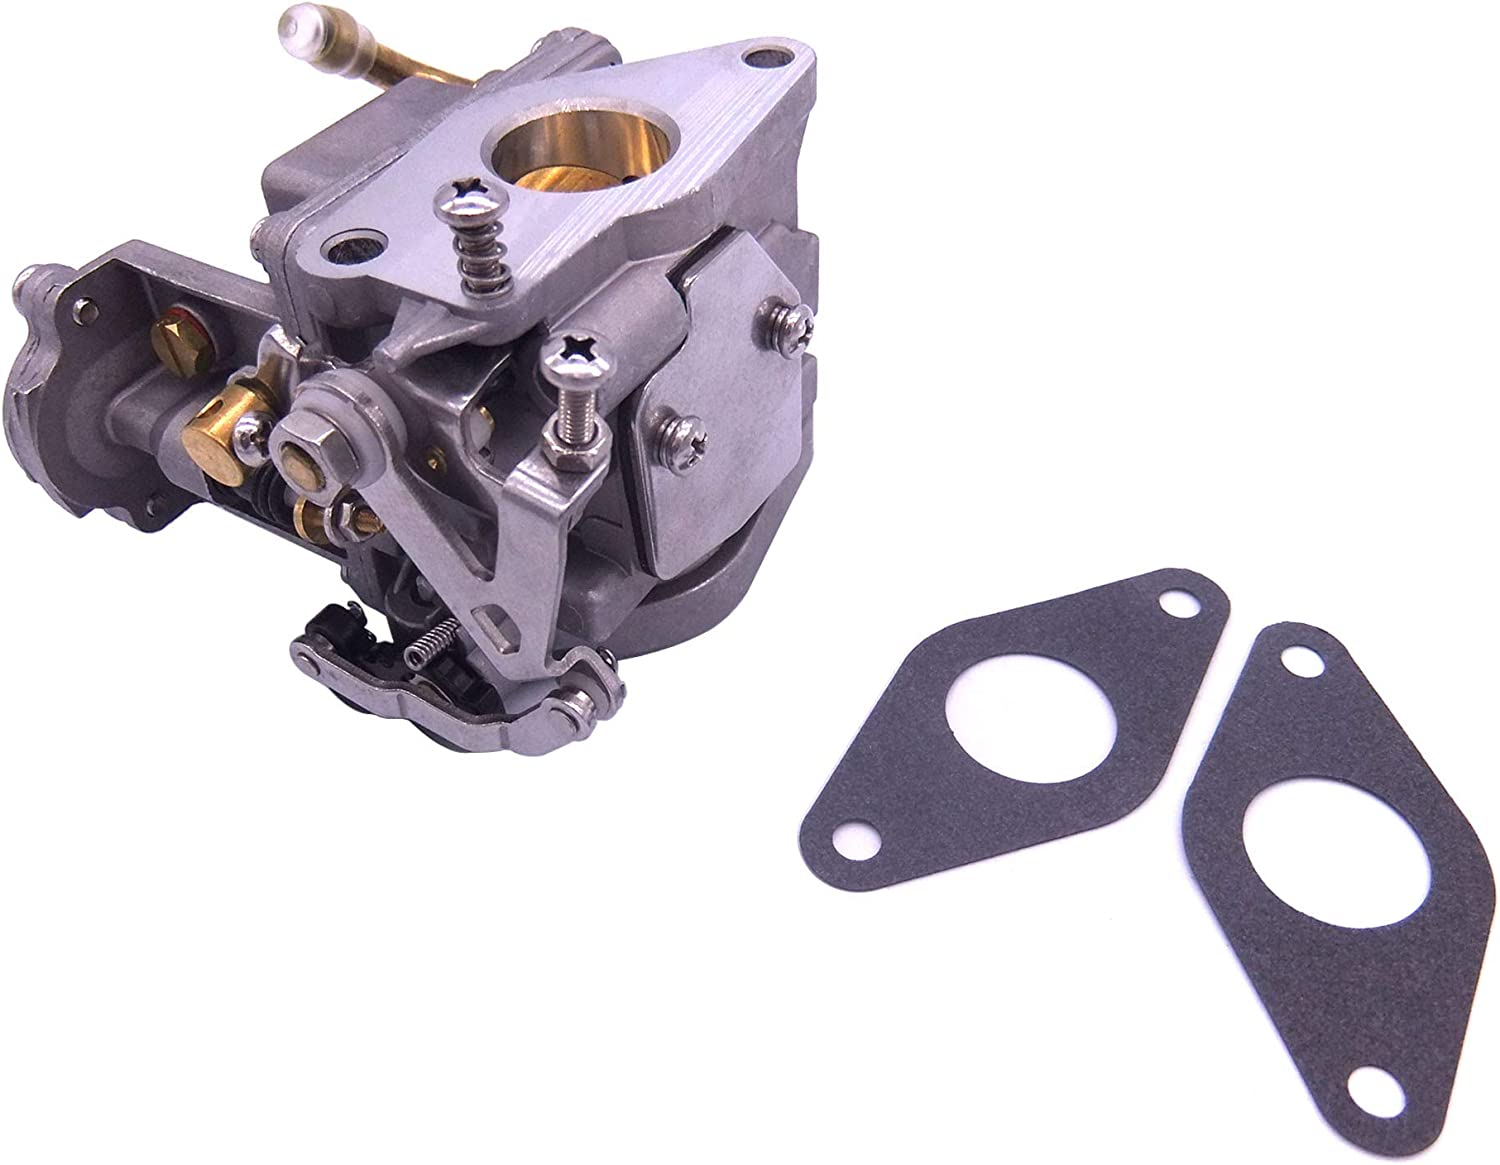 Boat Engine 3303-895110T01 3303-895110T11 8M0104462 Carburetor Assy and 27-835383001 Gaskets for Mercury Mariner 8HP 9.9HP 4-Stroke Outboard Motor